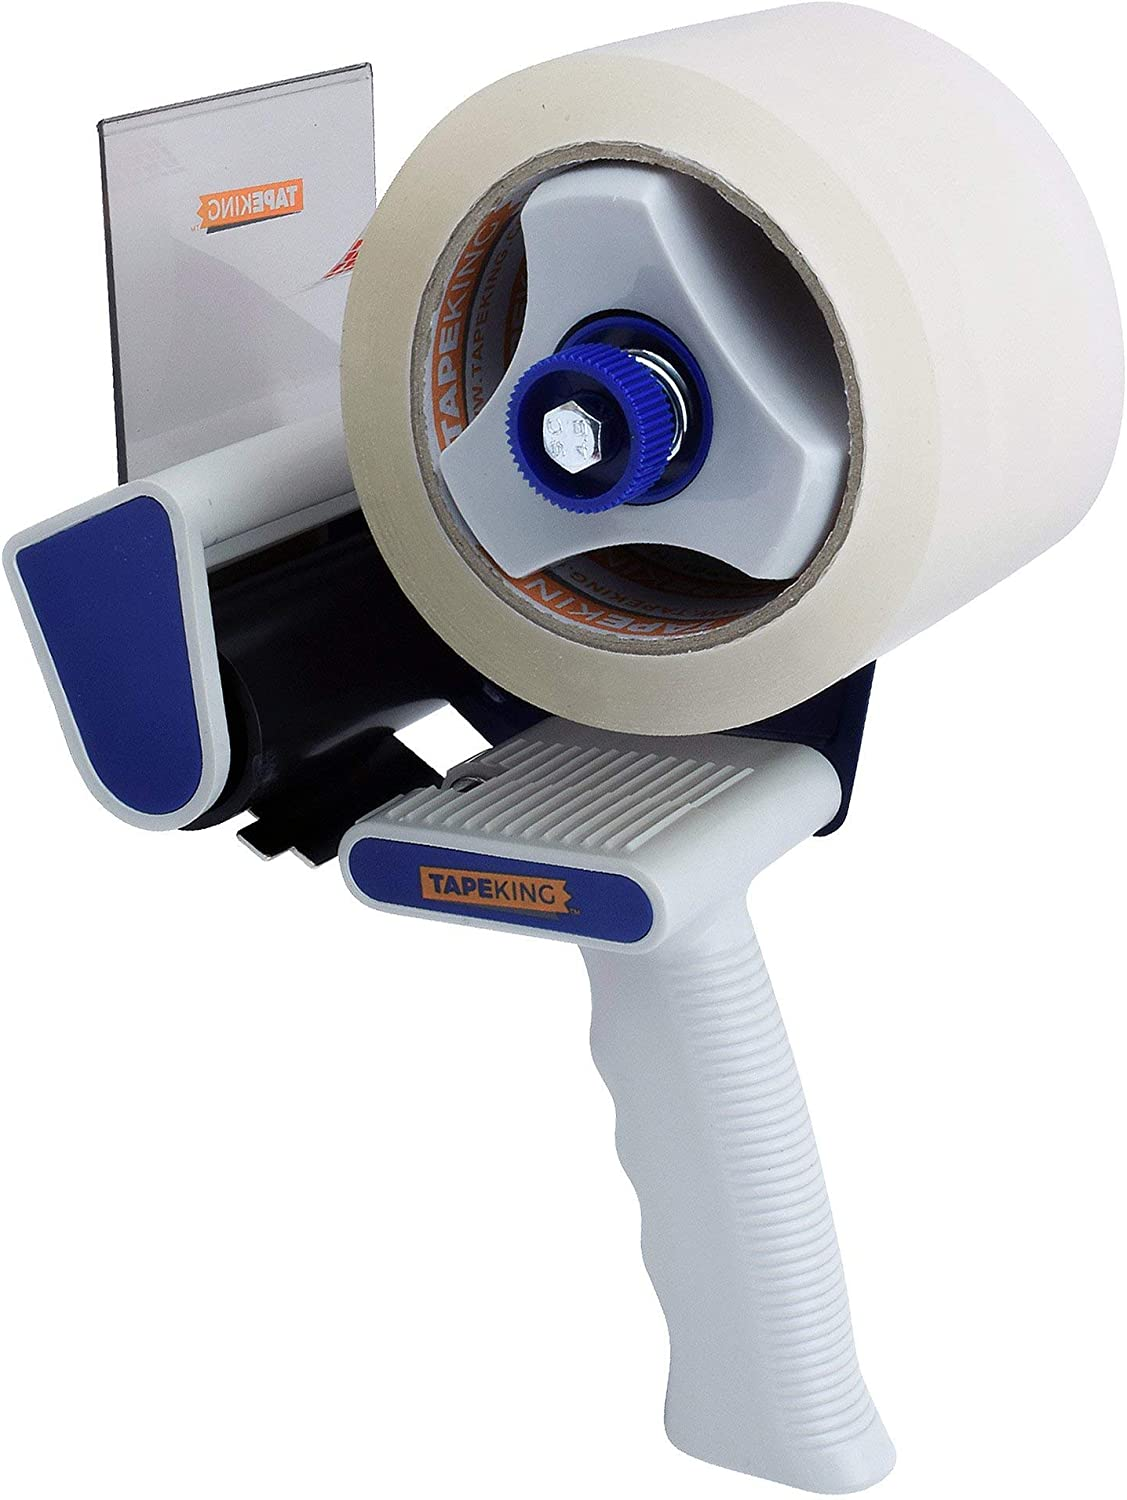 Handheld Tape Dispenser Gun with 3 FREE rolls Packing Tape Included.